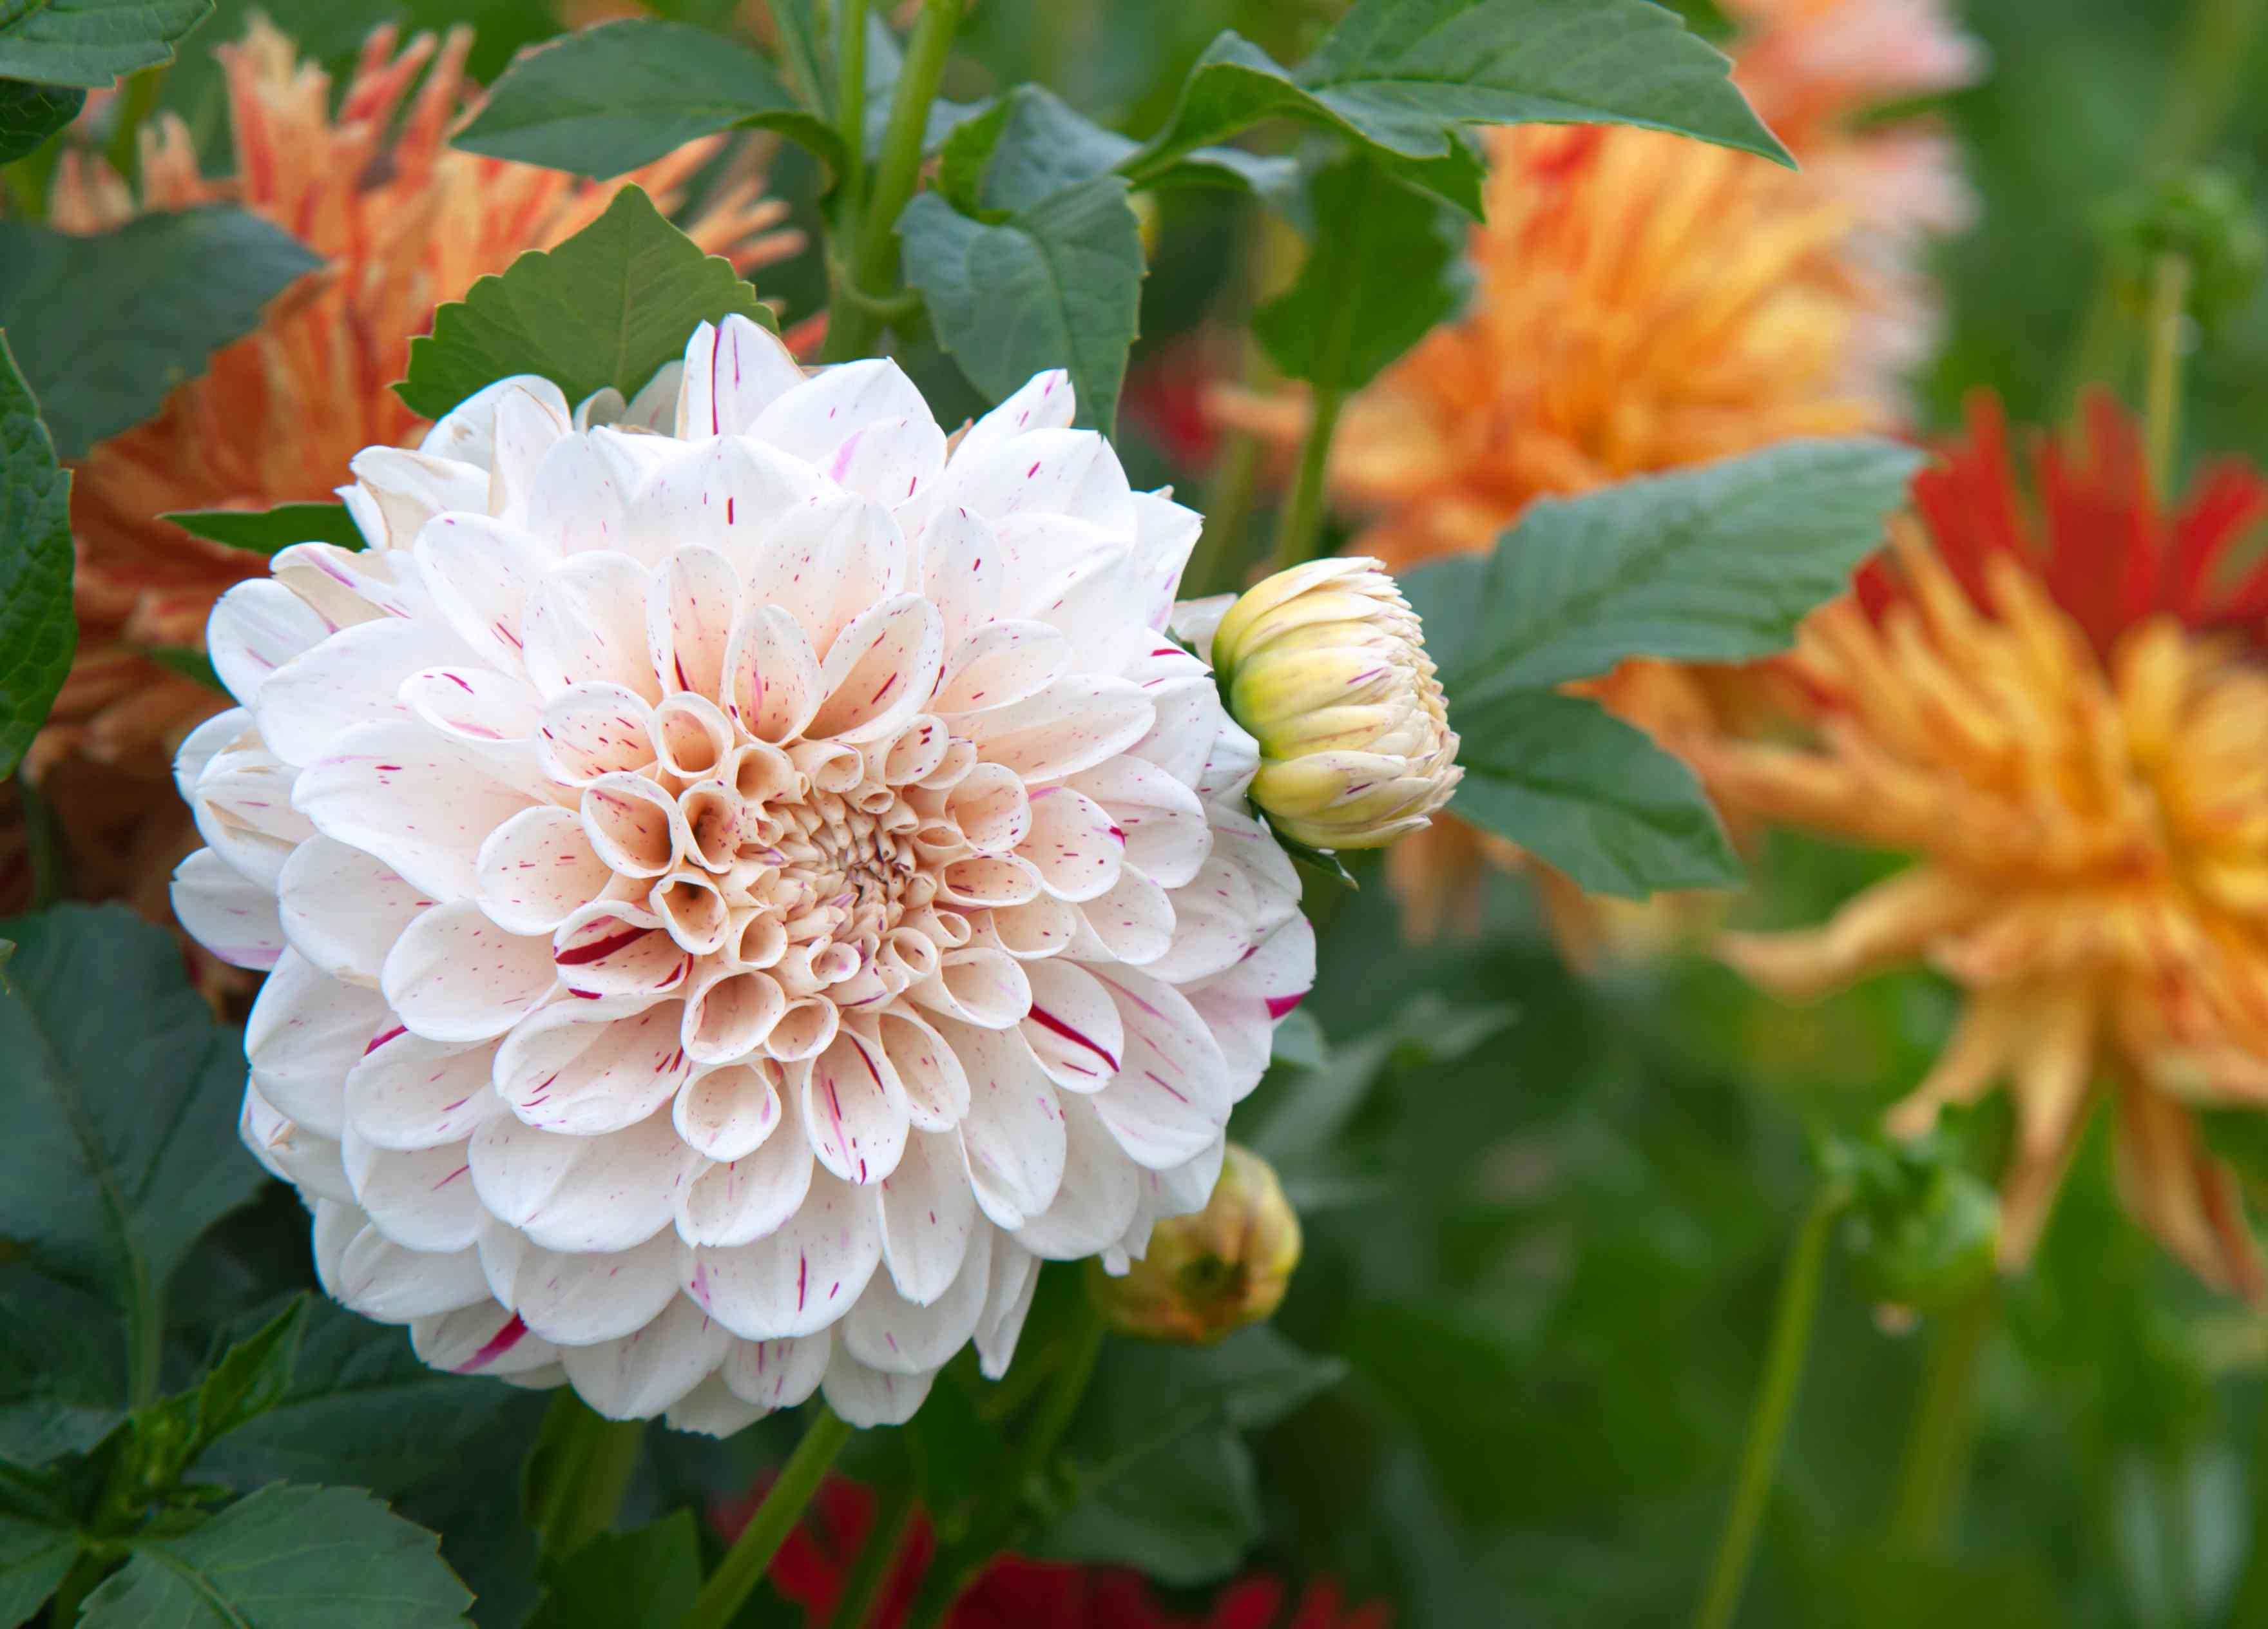 Dahlia 'Hulins Carnival' with white and pink speckled ornamental flowers and buds closeup